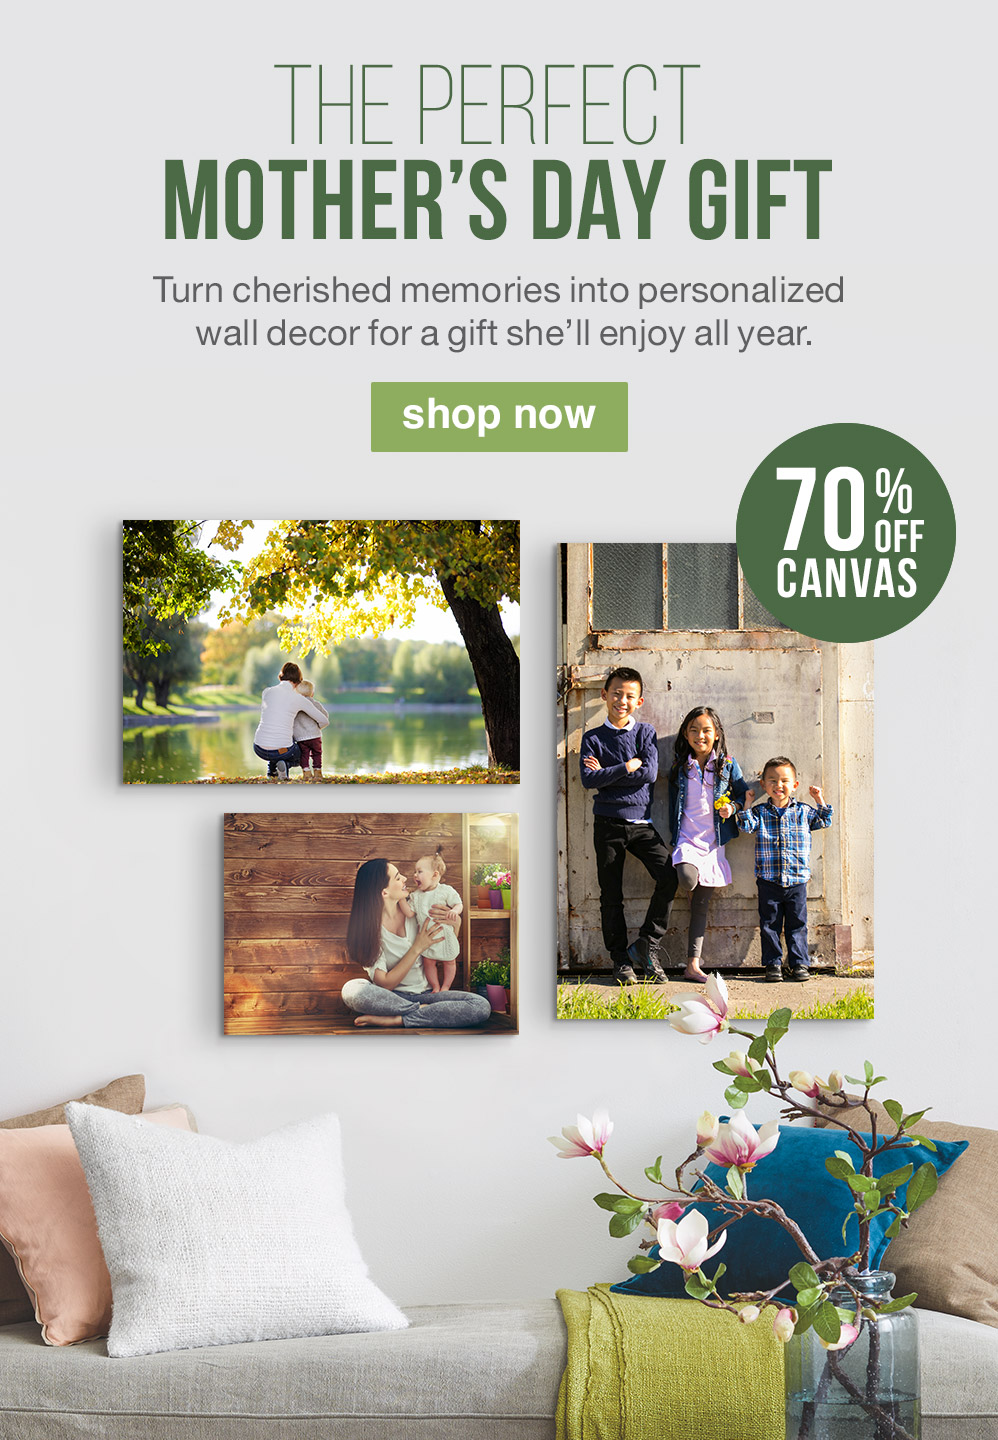 THE PERFECT MOTHER'S DAY GIFT. Turn cherished memories into personalized wall decor for a gift she'll enjoy all year. 70% OFF CANVAS. SHOP NOW